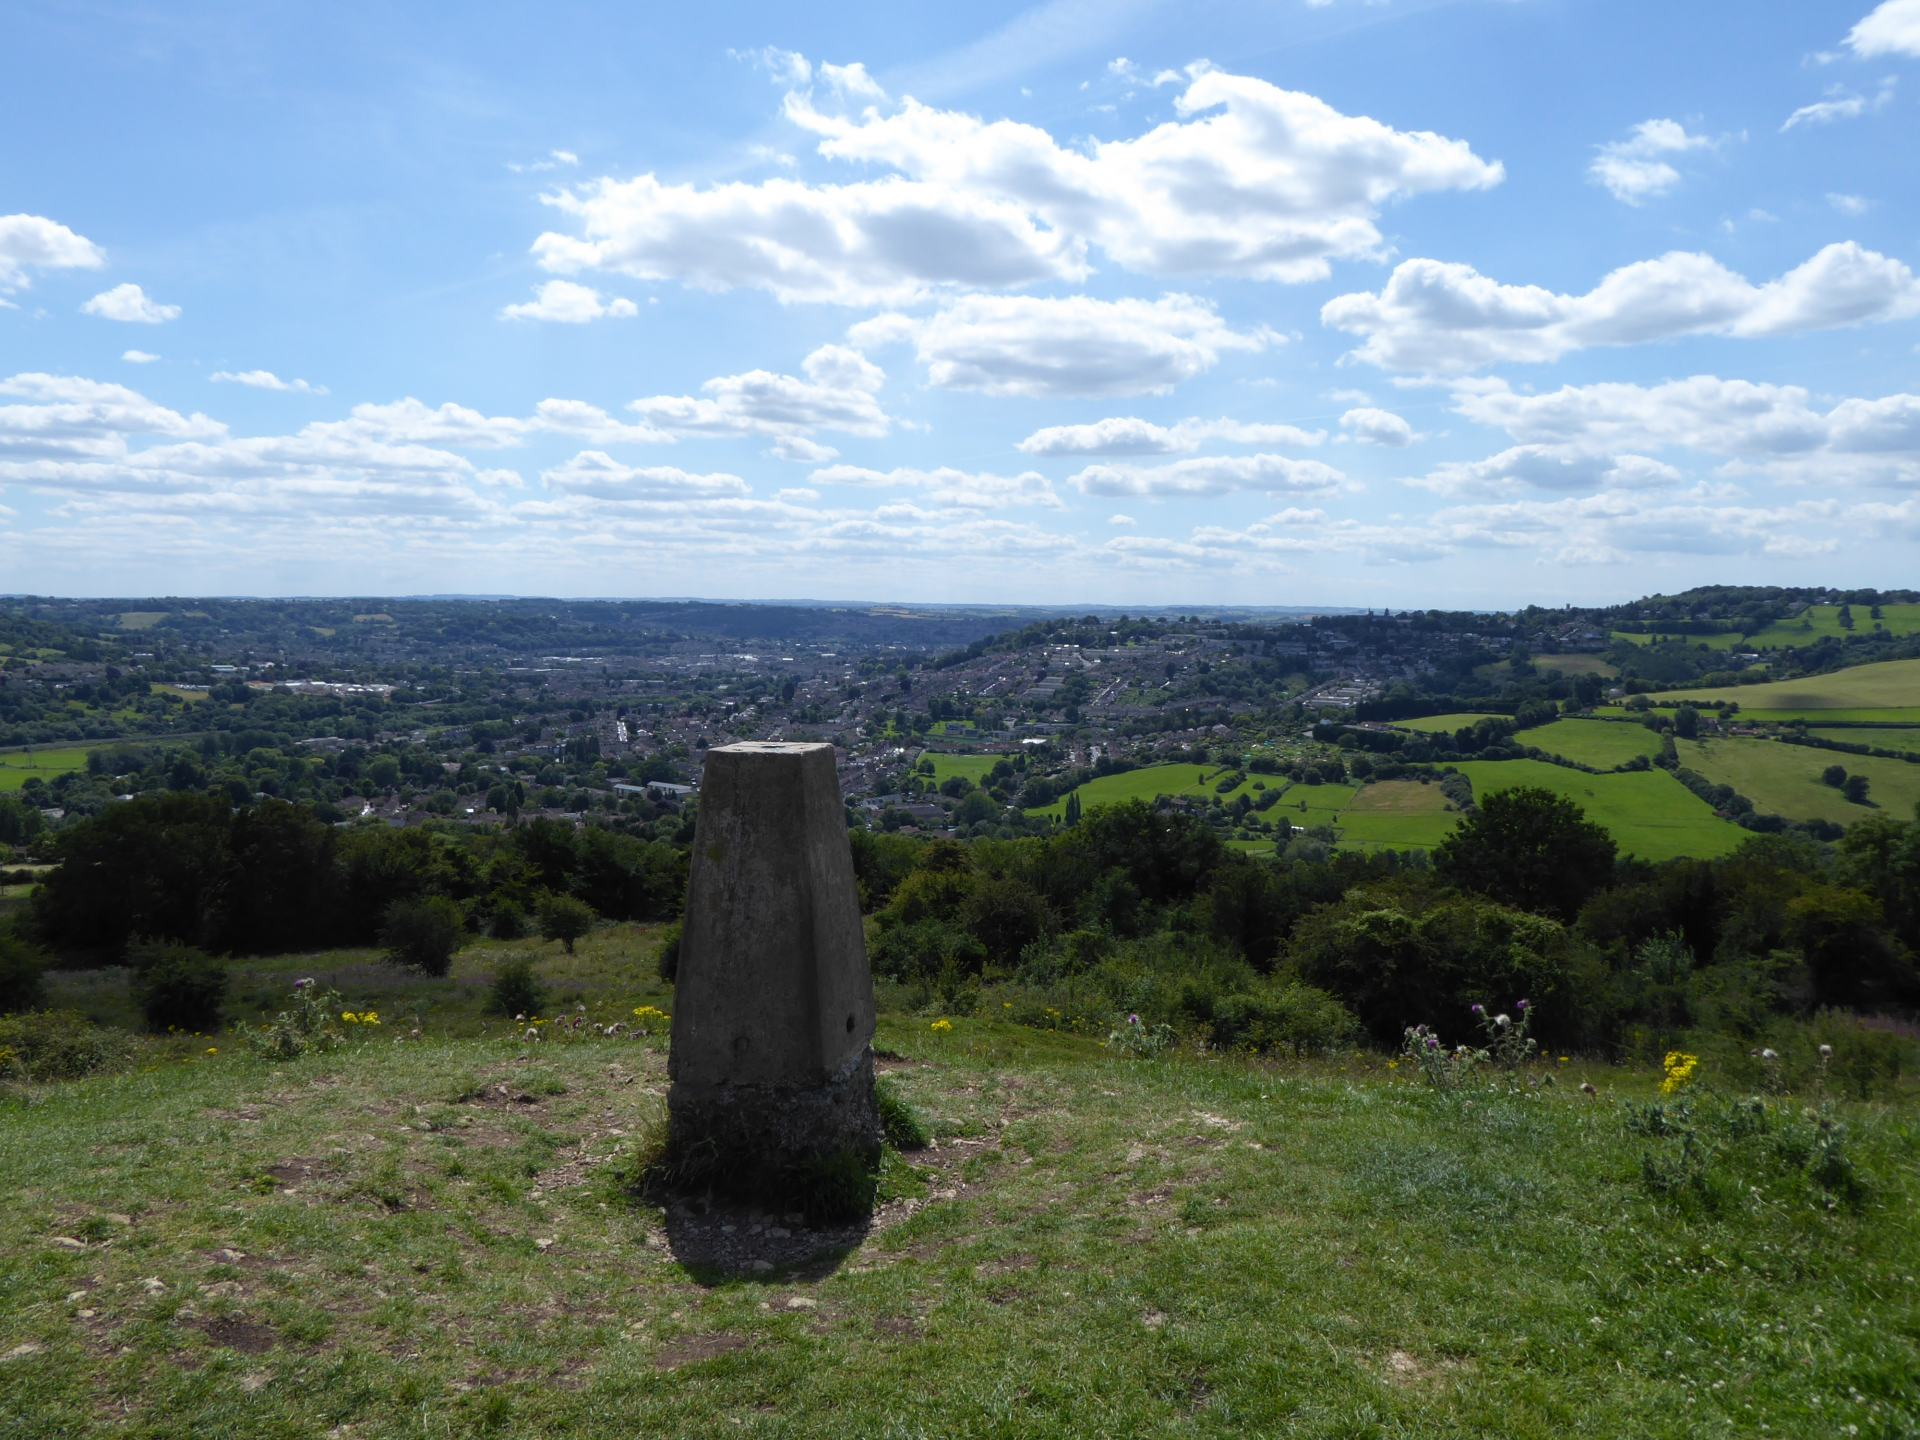 Looking over the city of Bath from the top of Solsbury Hill. A hill marker is in the foreground.